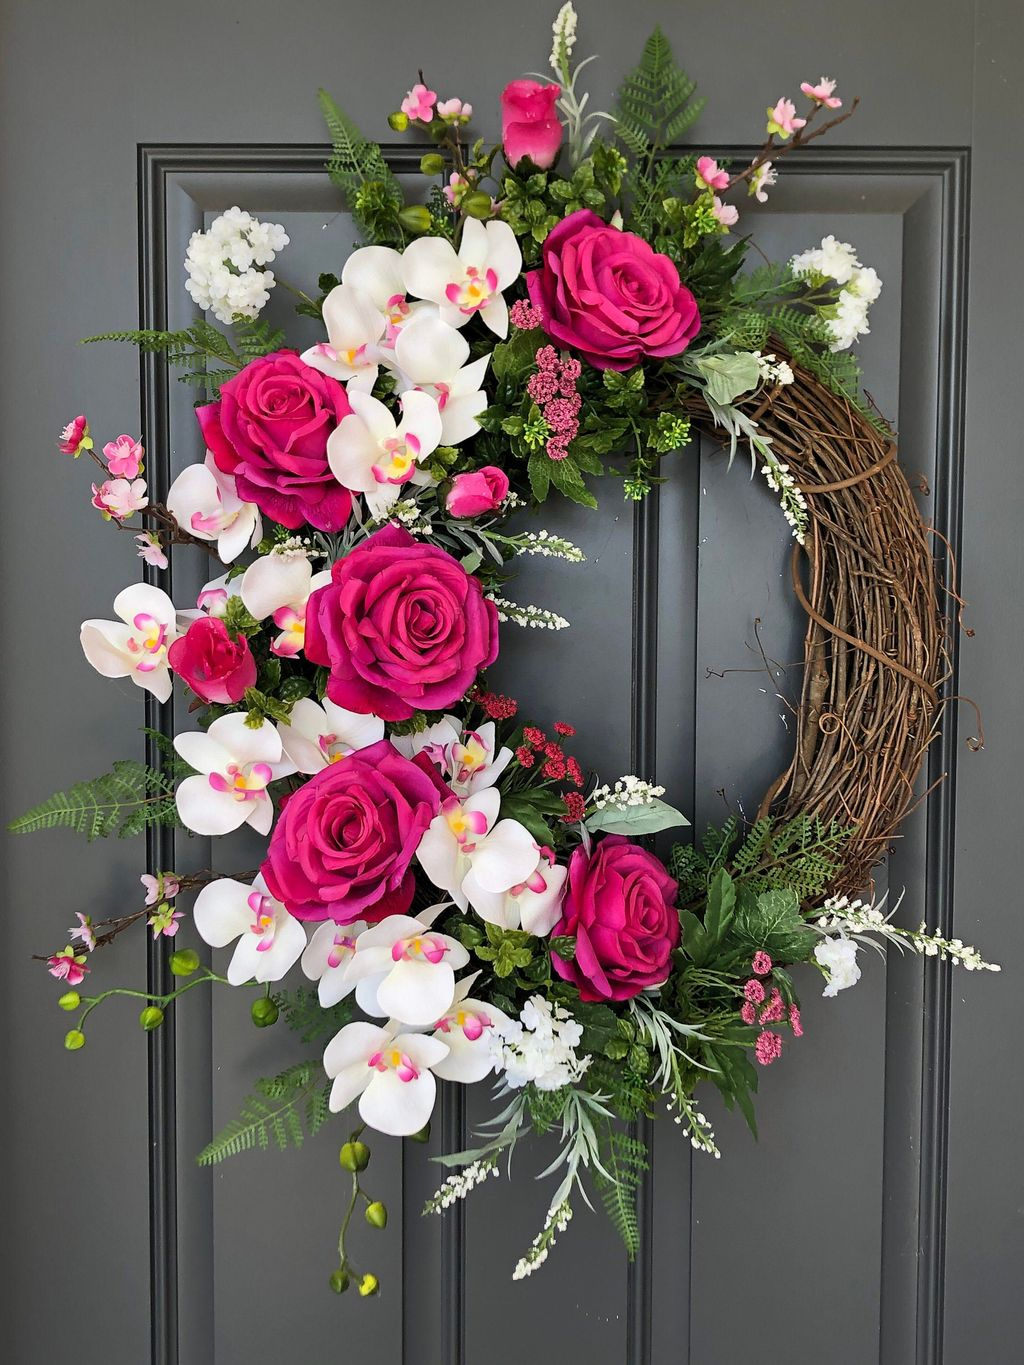 Brilliant Spring Door Wreaths Design Ideas 25